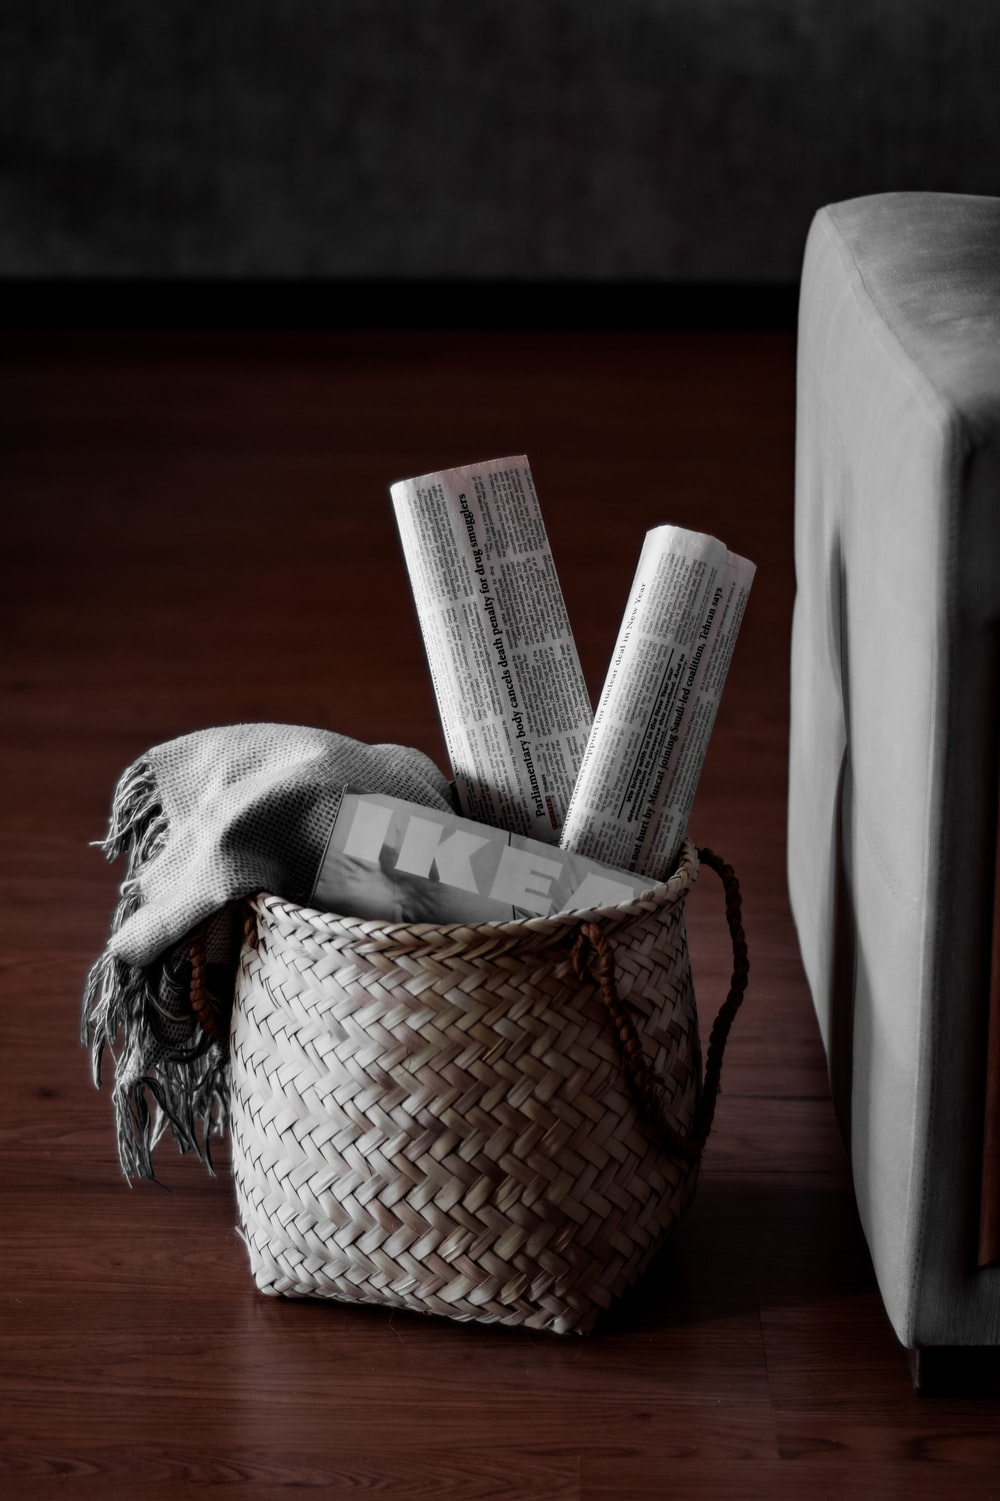 white tissue paper on brown woven basket